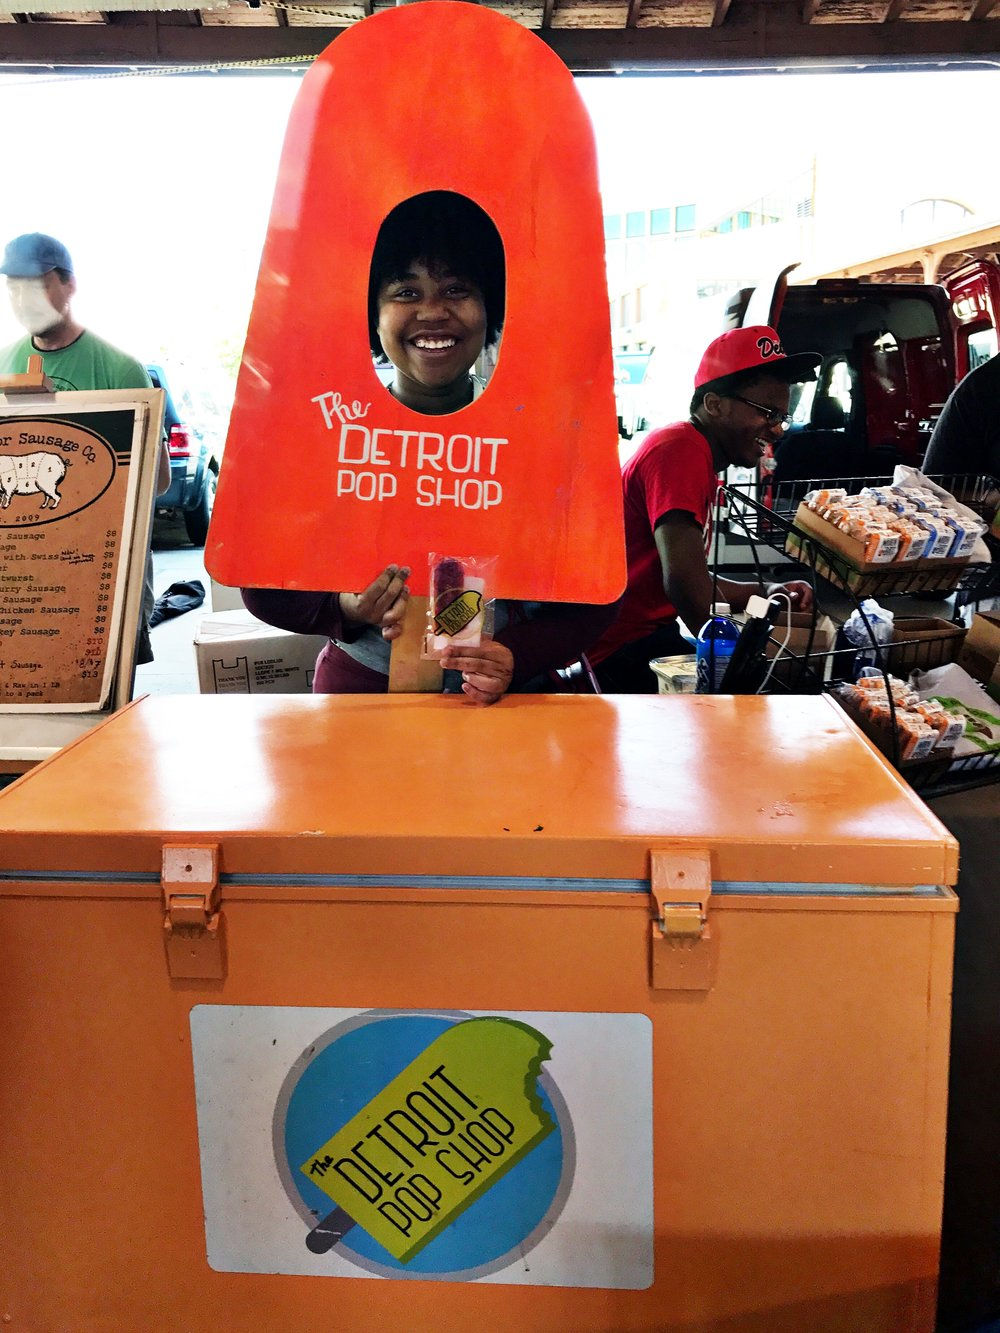 The Detroit Pop Shop - is supported by the Detroit Food Academy. Students like Samira Ray (in photo)learn how to become entrepreneurs.